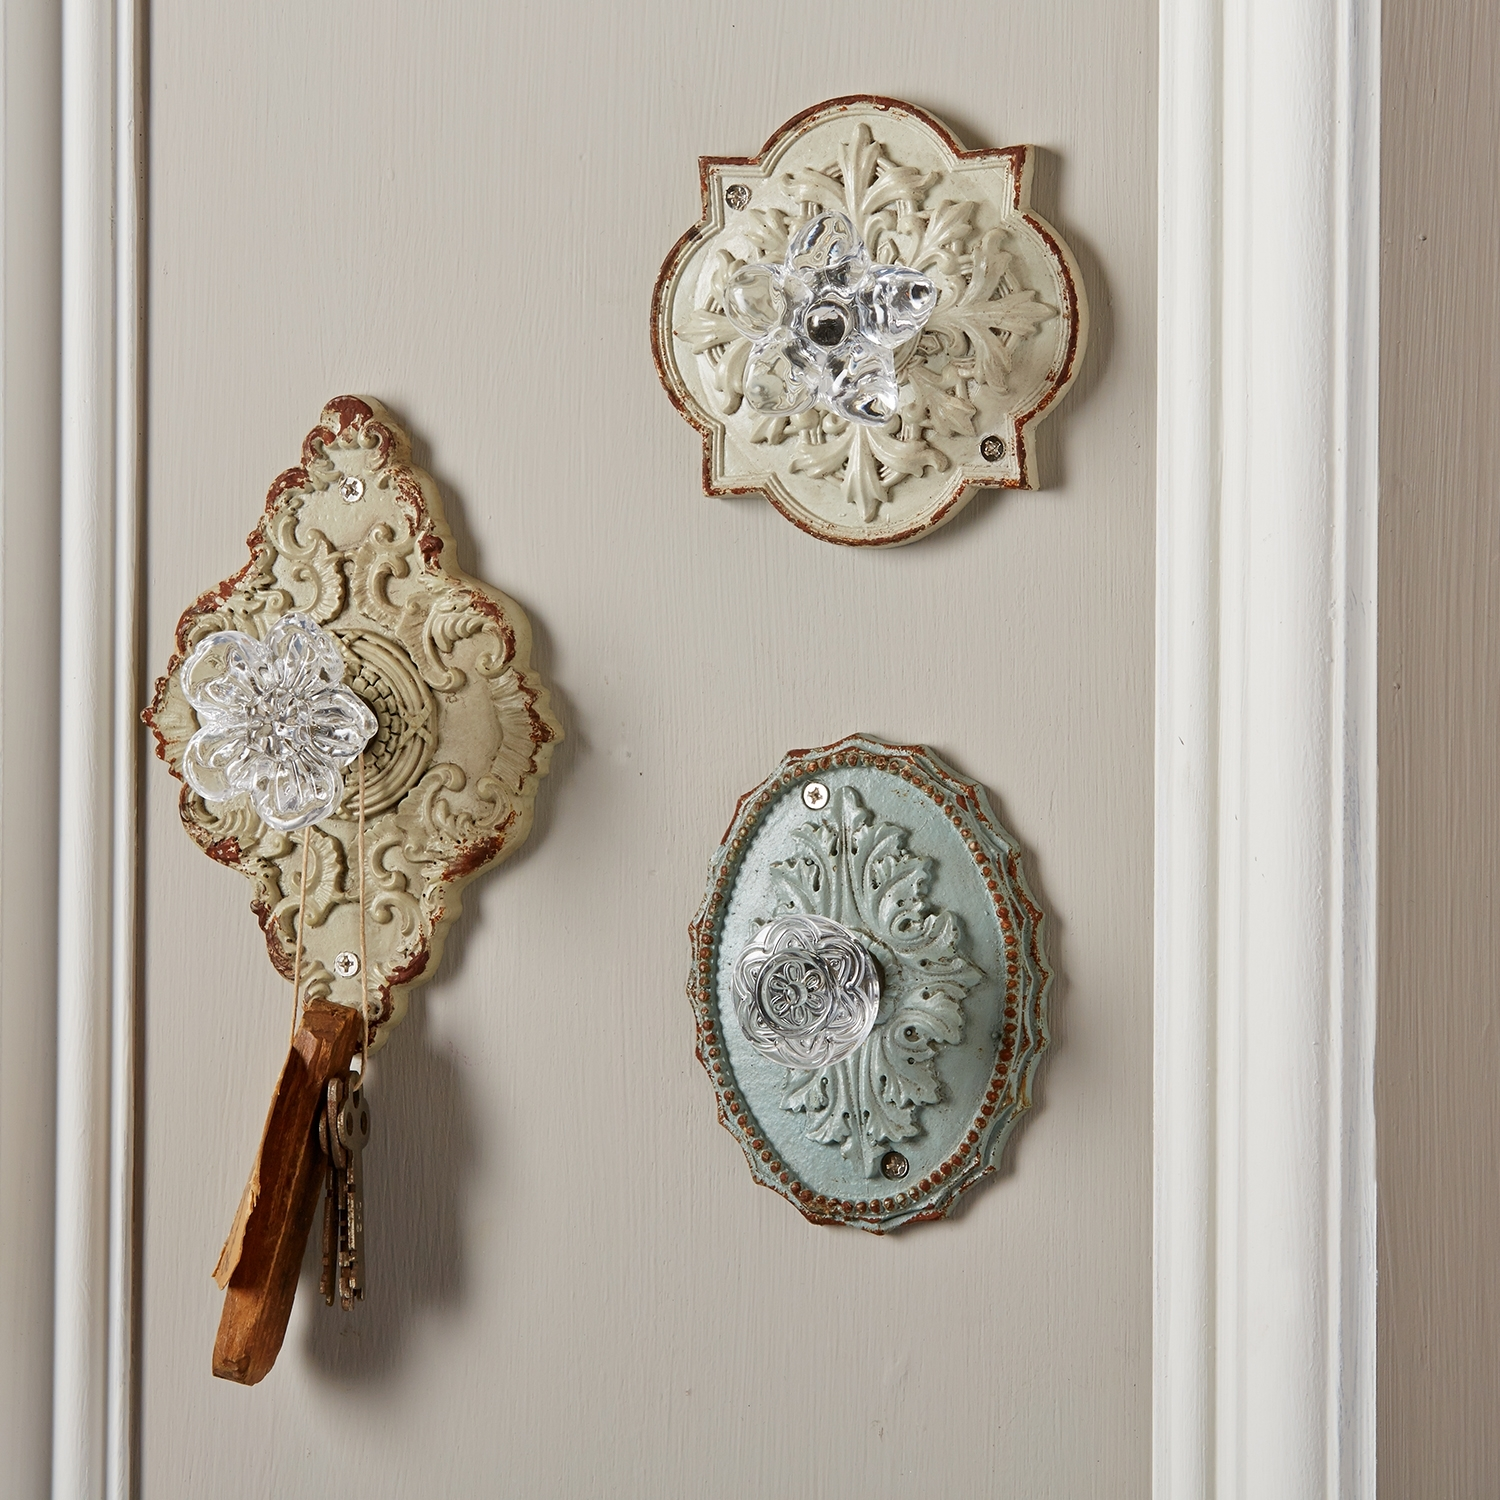 Permalink to Antique Door Knob Hooks